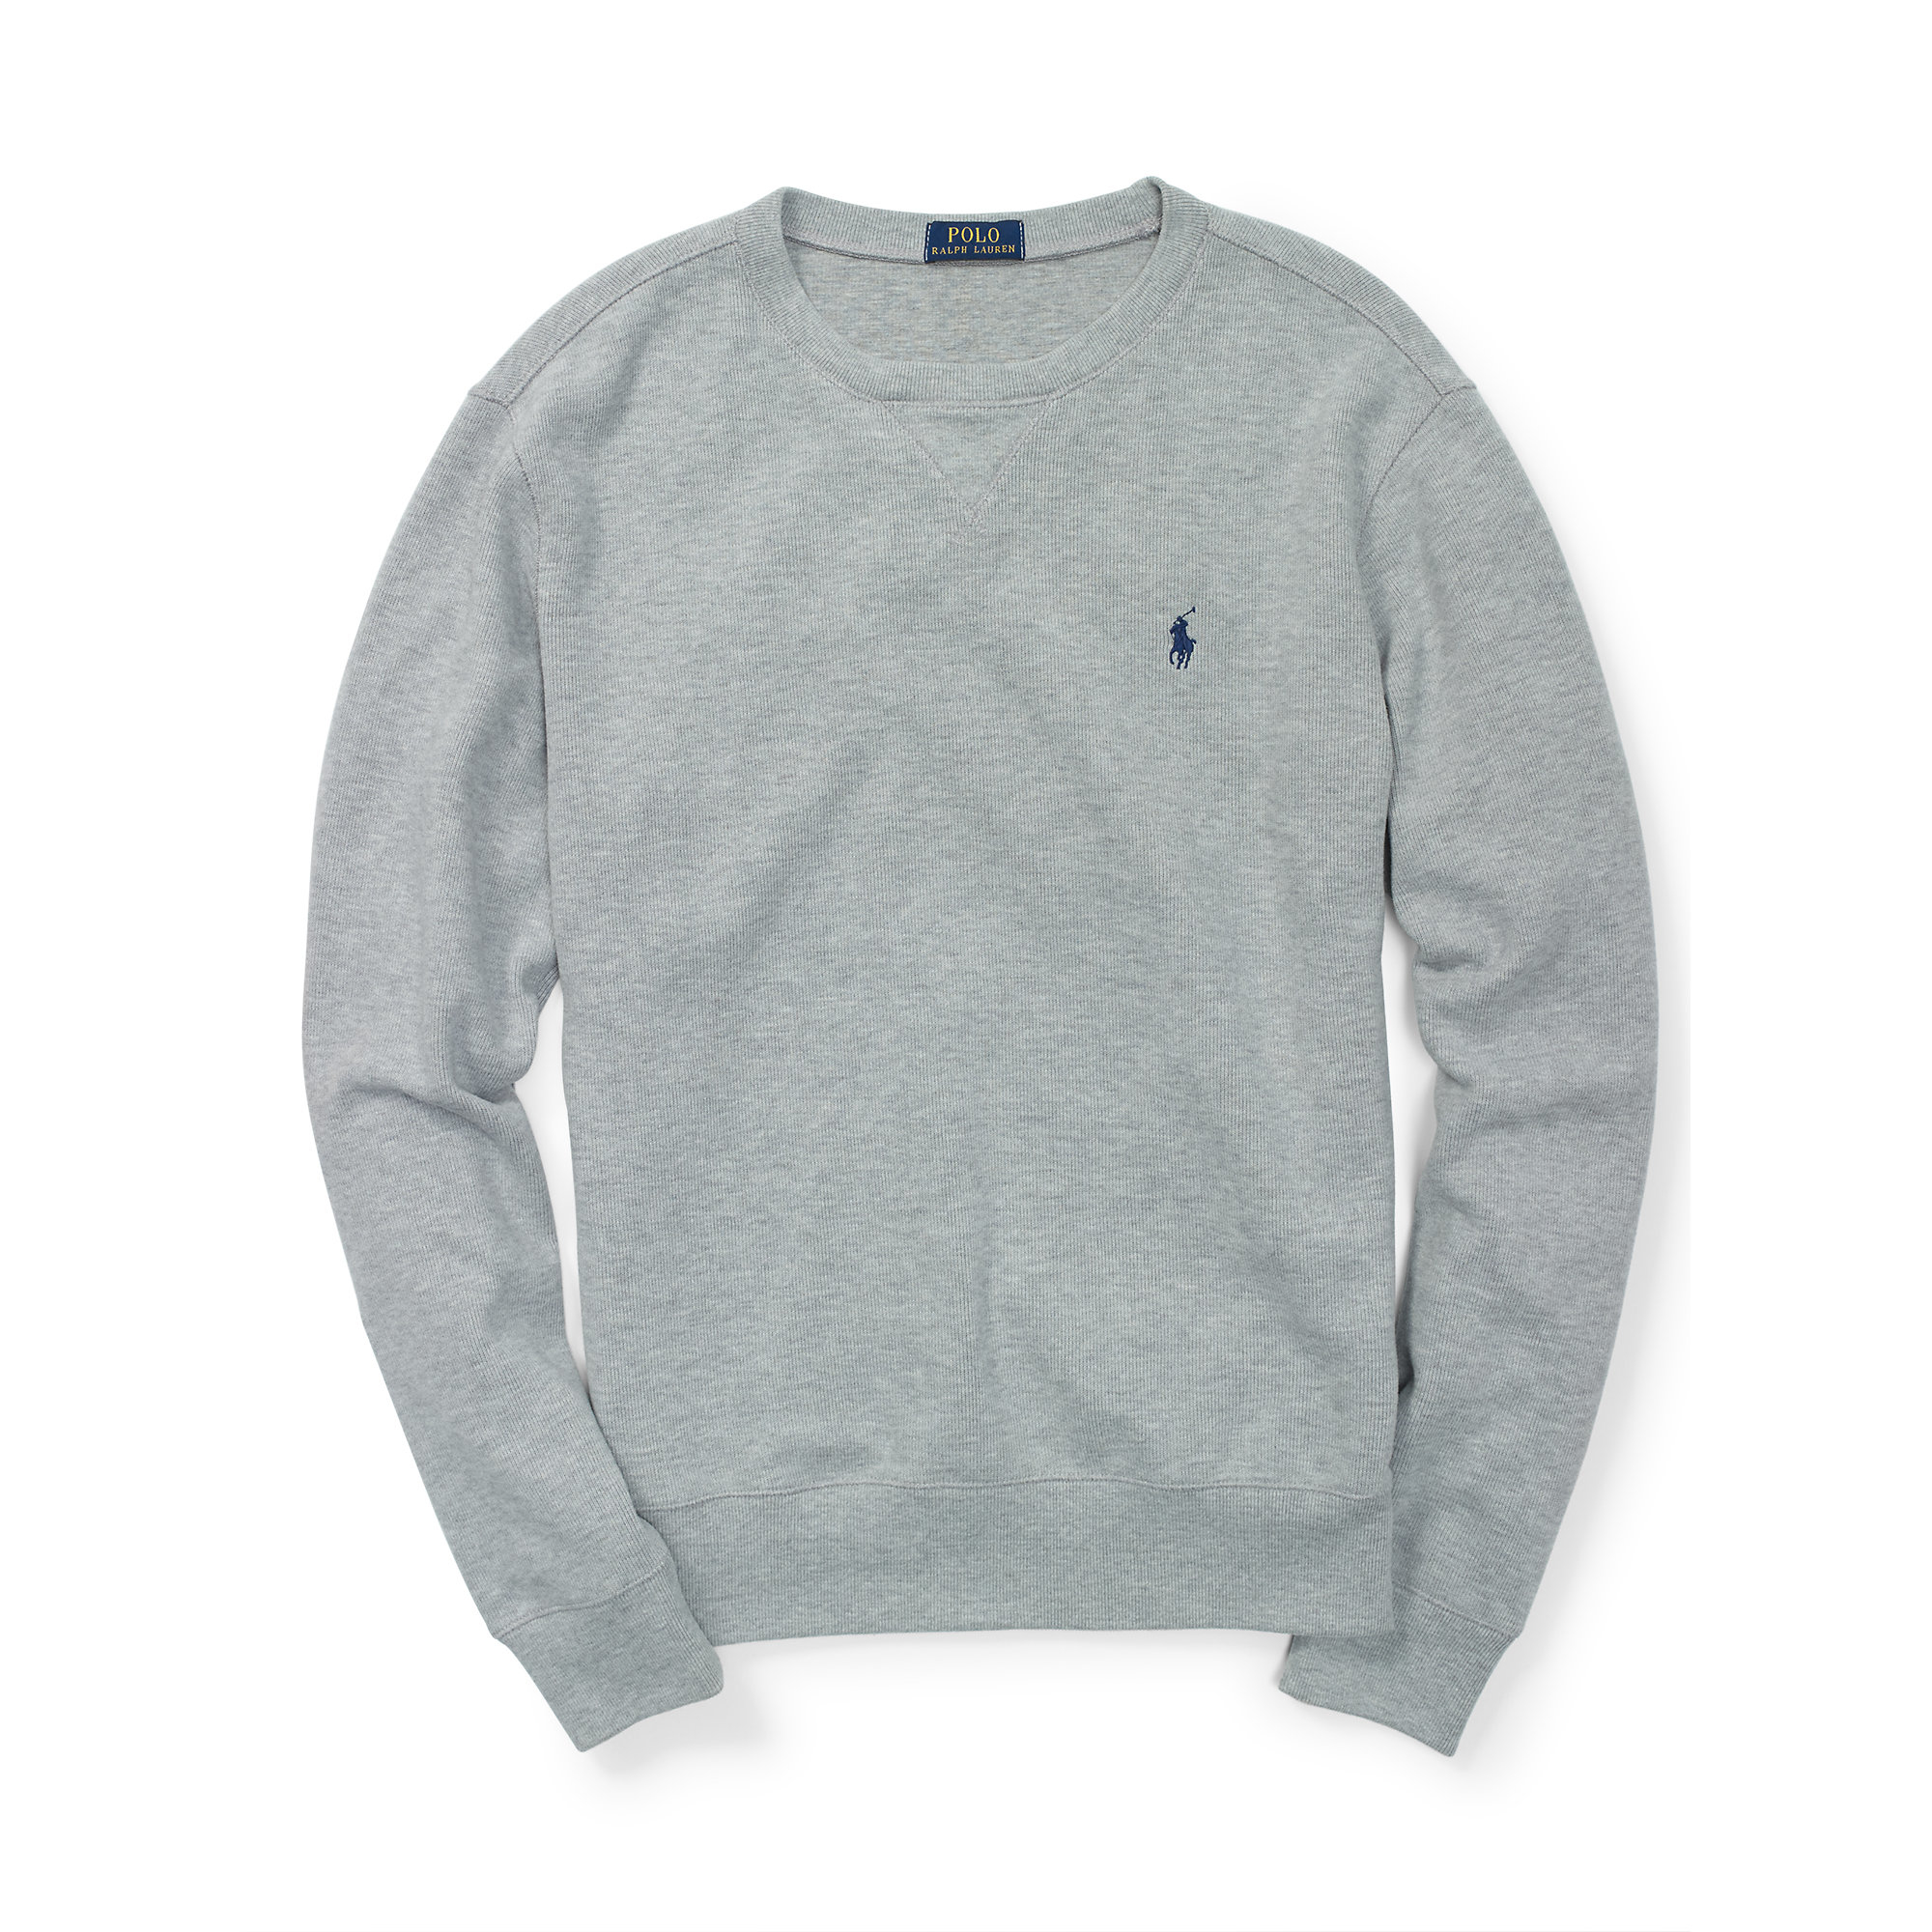 Polo ralph lauren French-rib Cotton Pullover in Gray for Men | Lyst